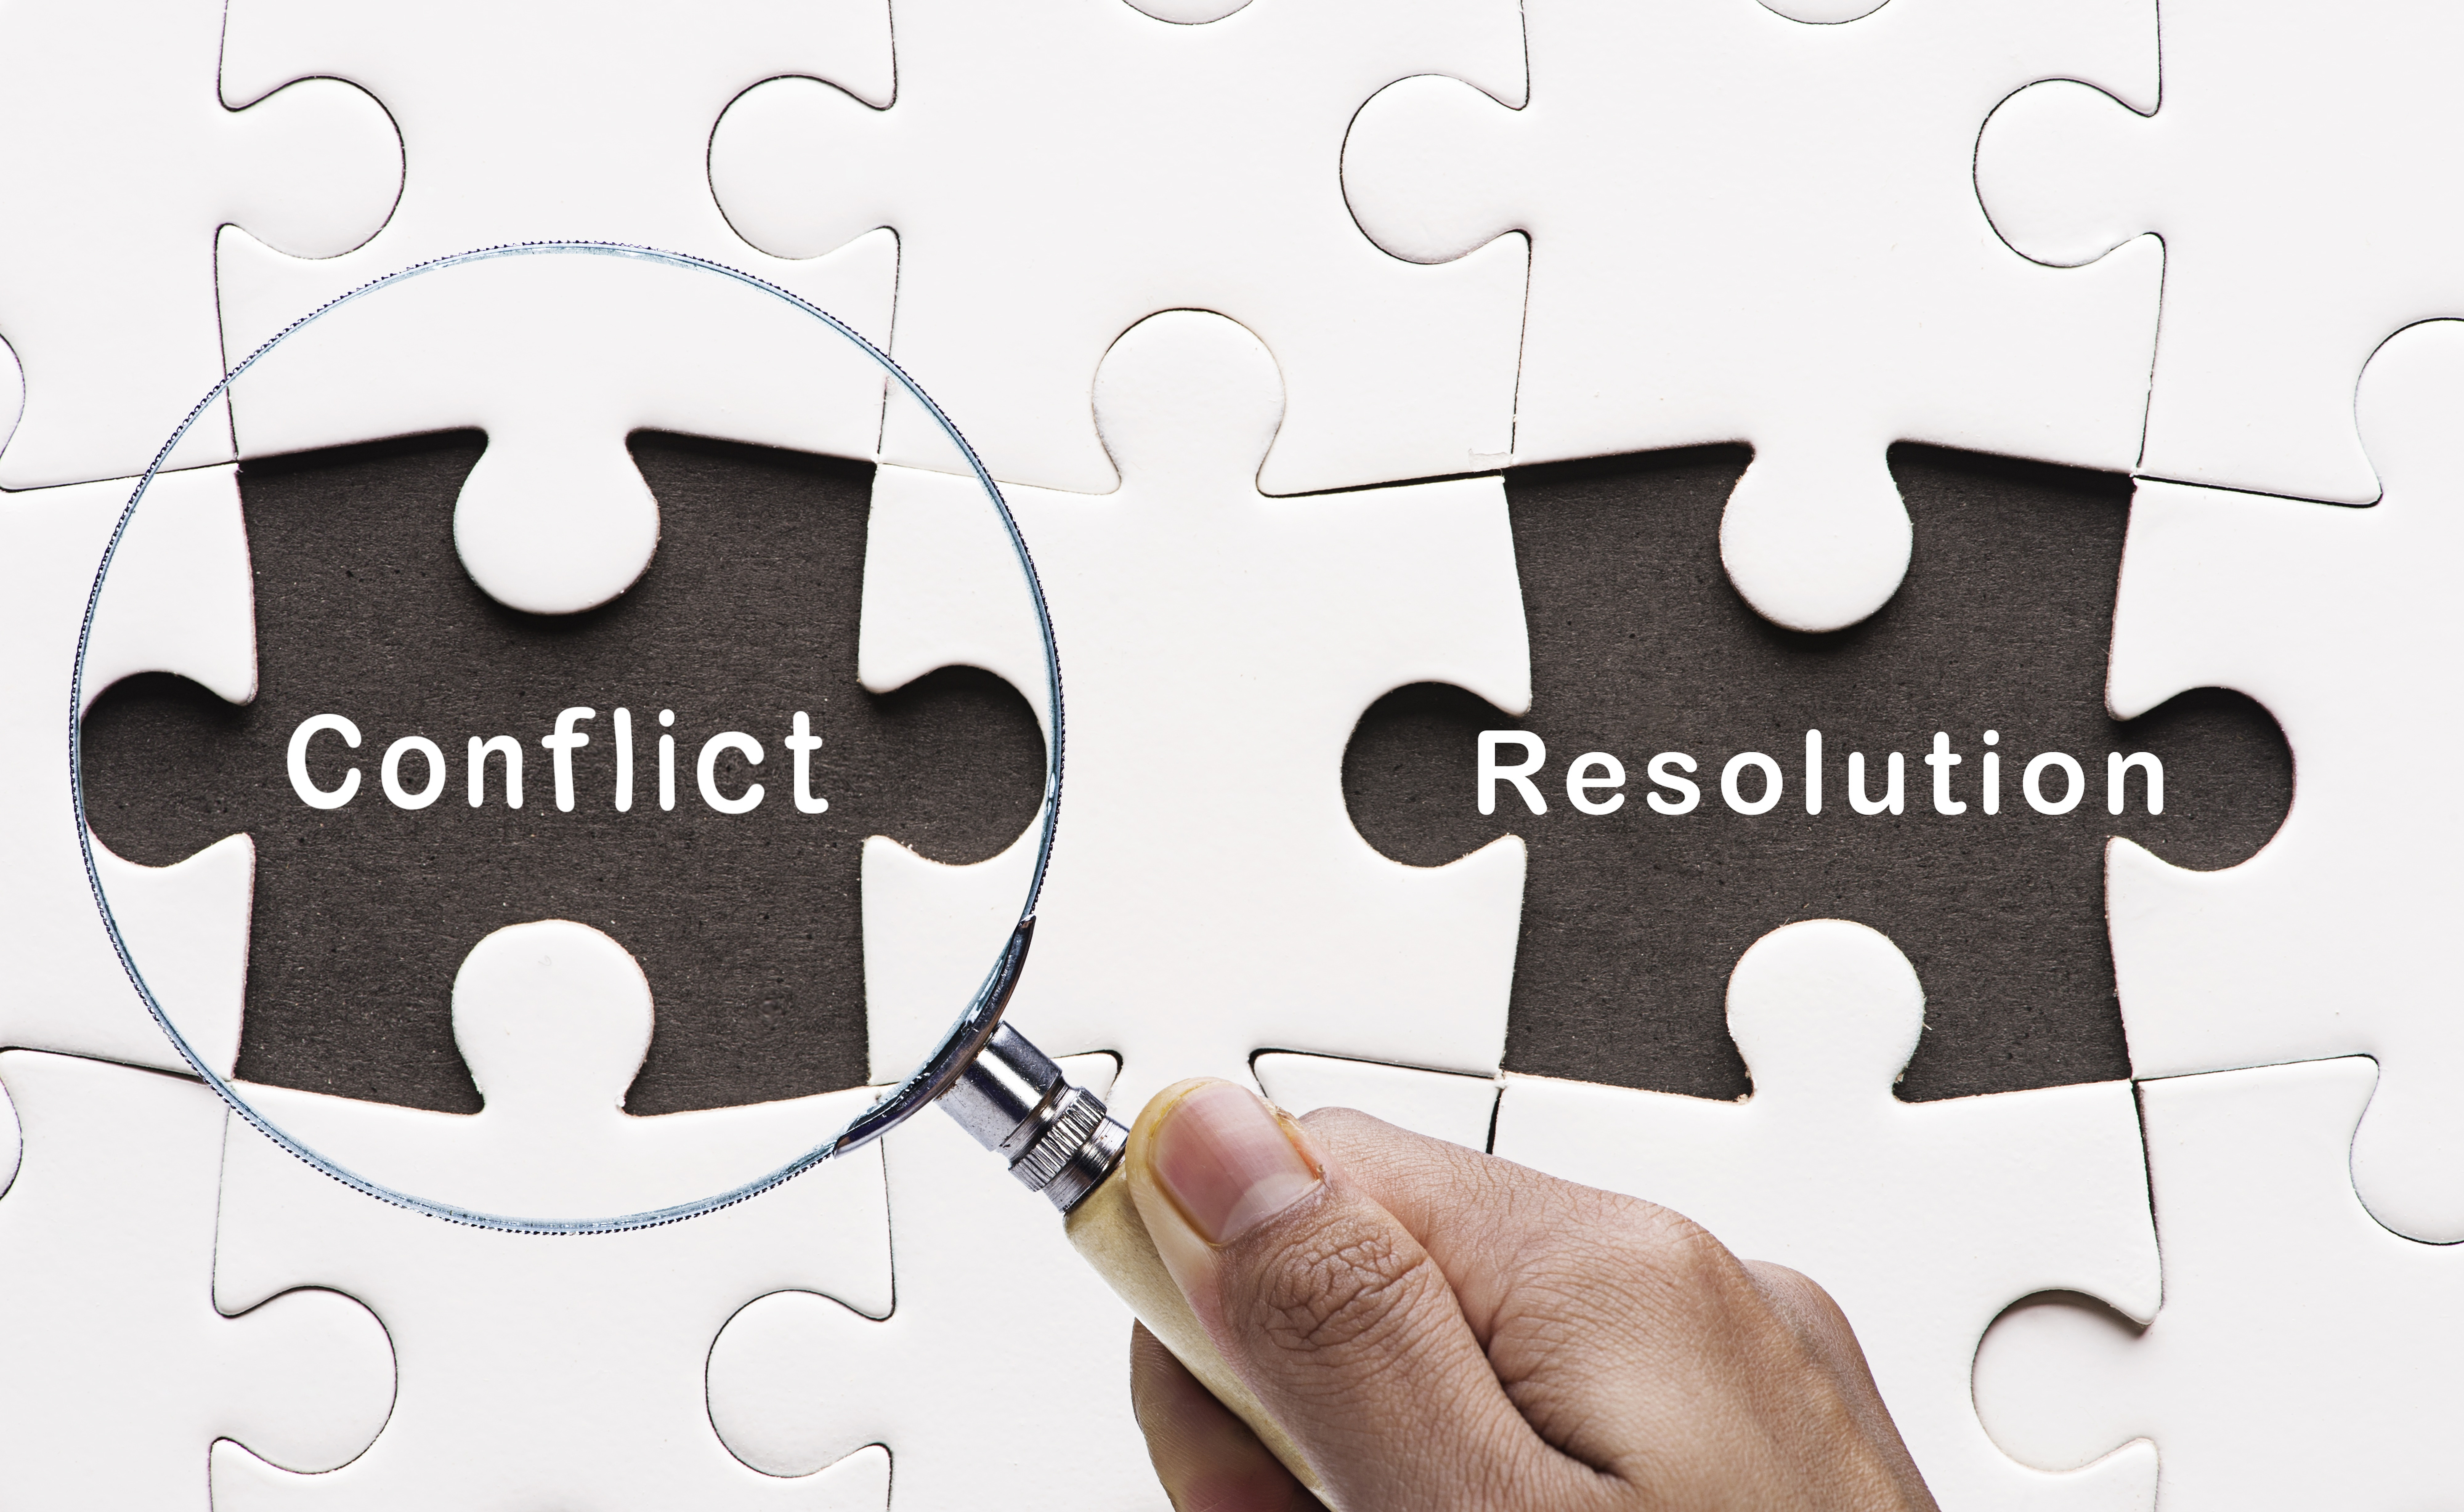 managing conflicts in a multicultural organization cultural studies essay The role of diplomacy & its effects in multicultural conflict management the role of diplomacy & its effects in multicultural conflict  organization 89 cultural.